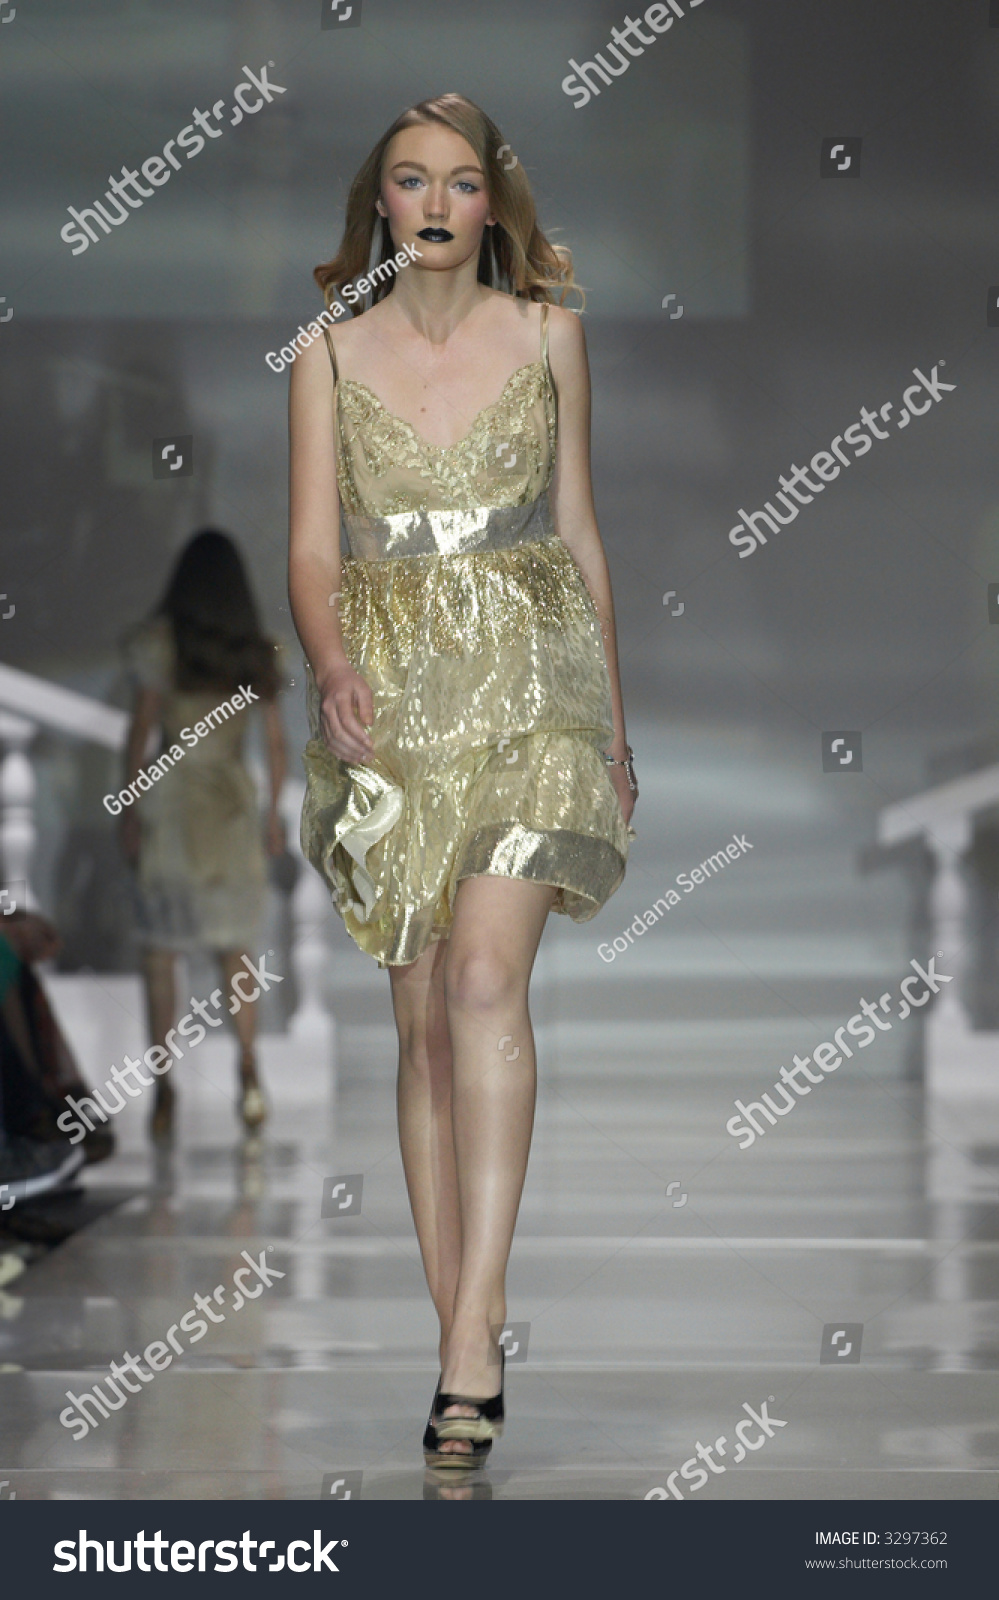 Vanessa Jackman: New York Fashion Week SS 2012...A Model ... |Fashion Model Walking